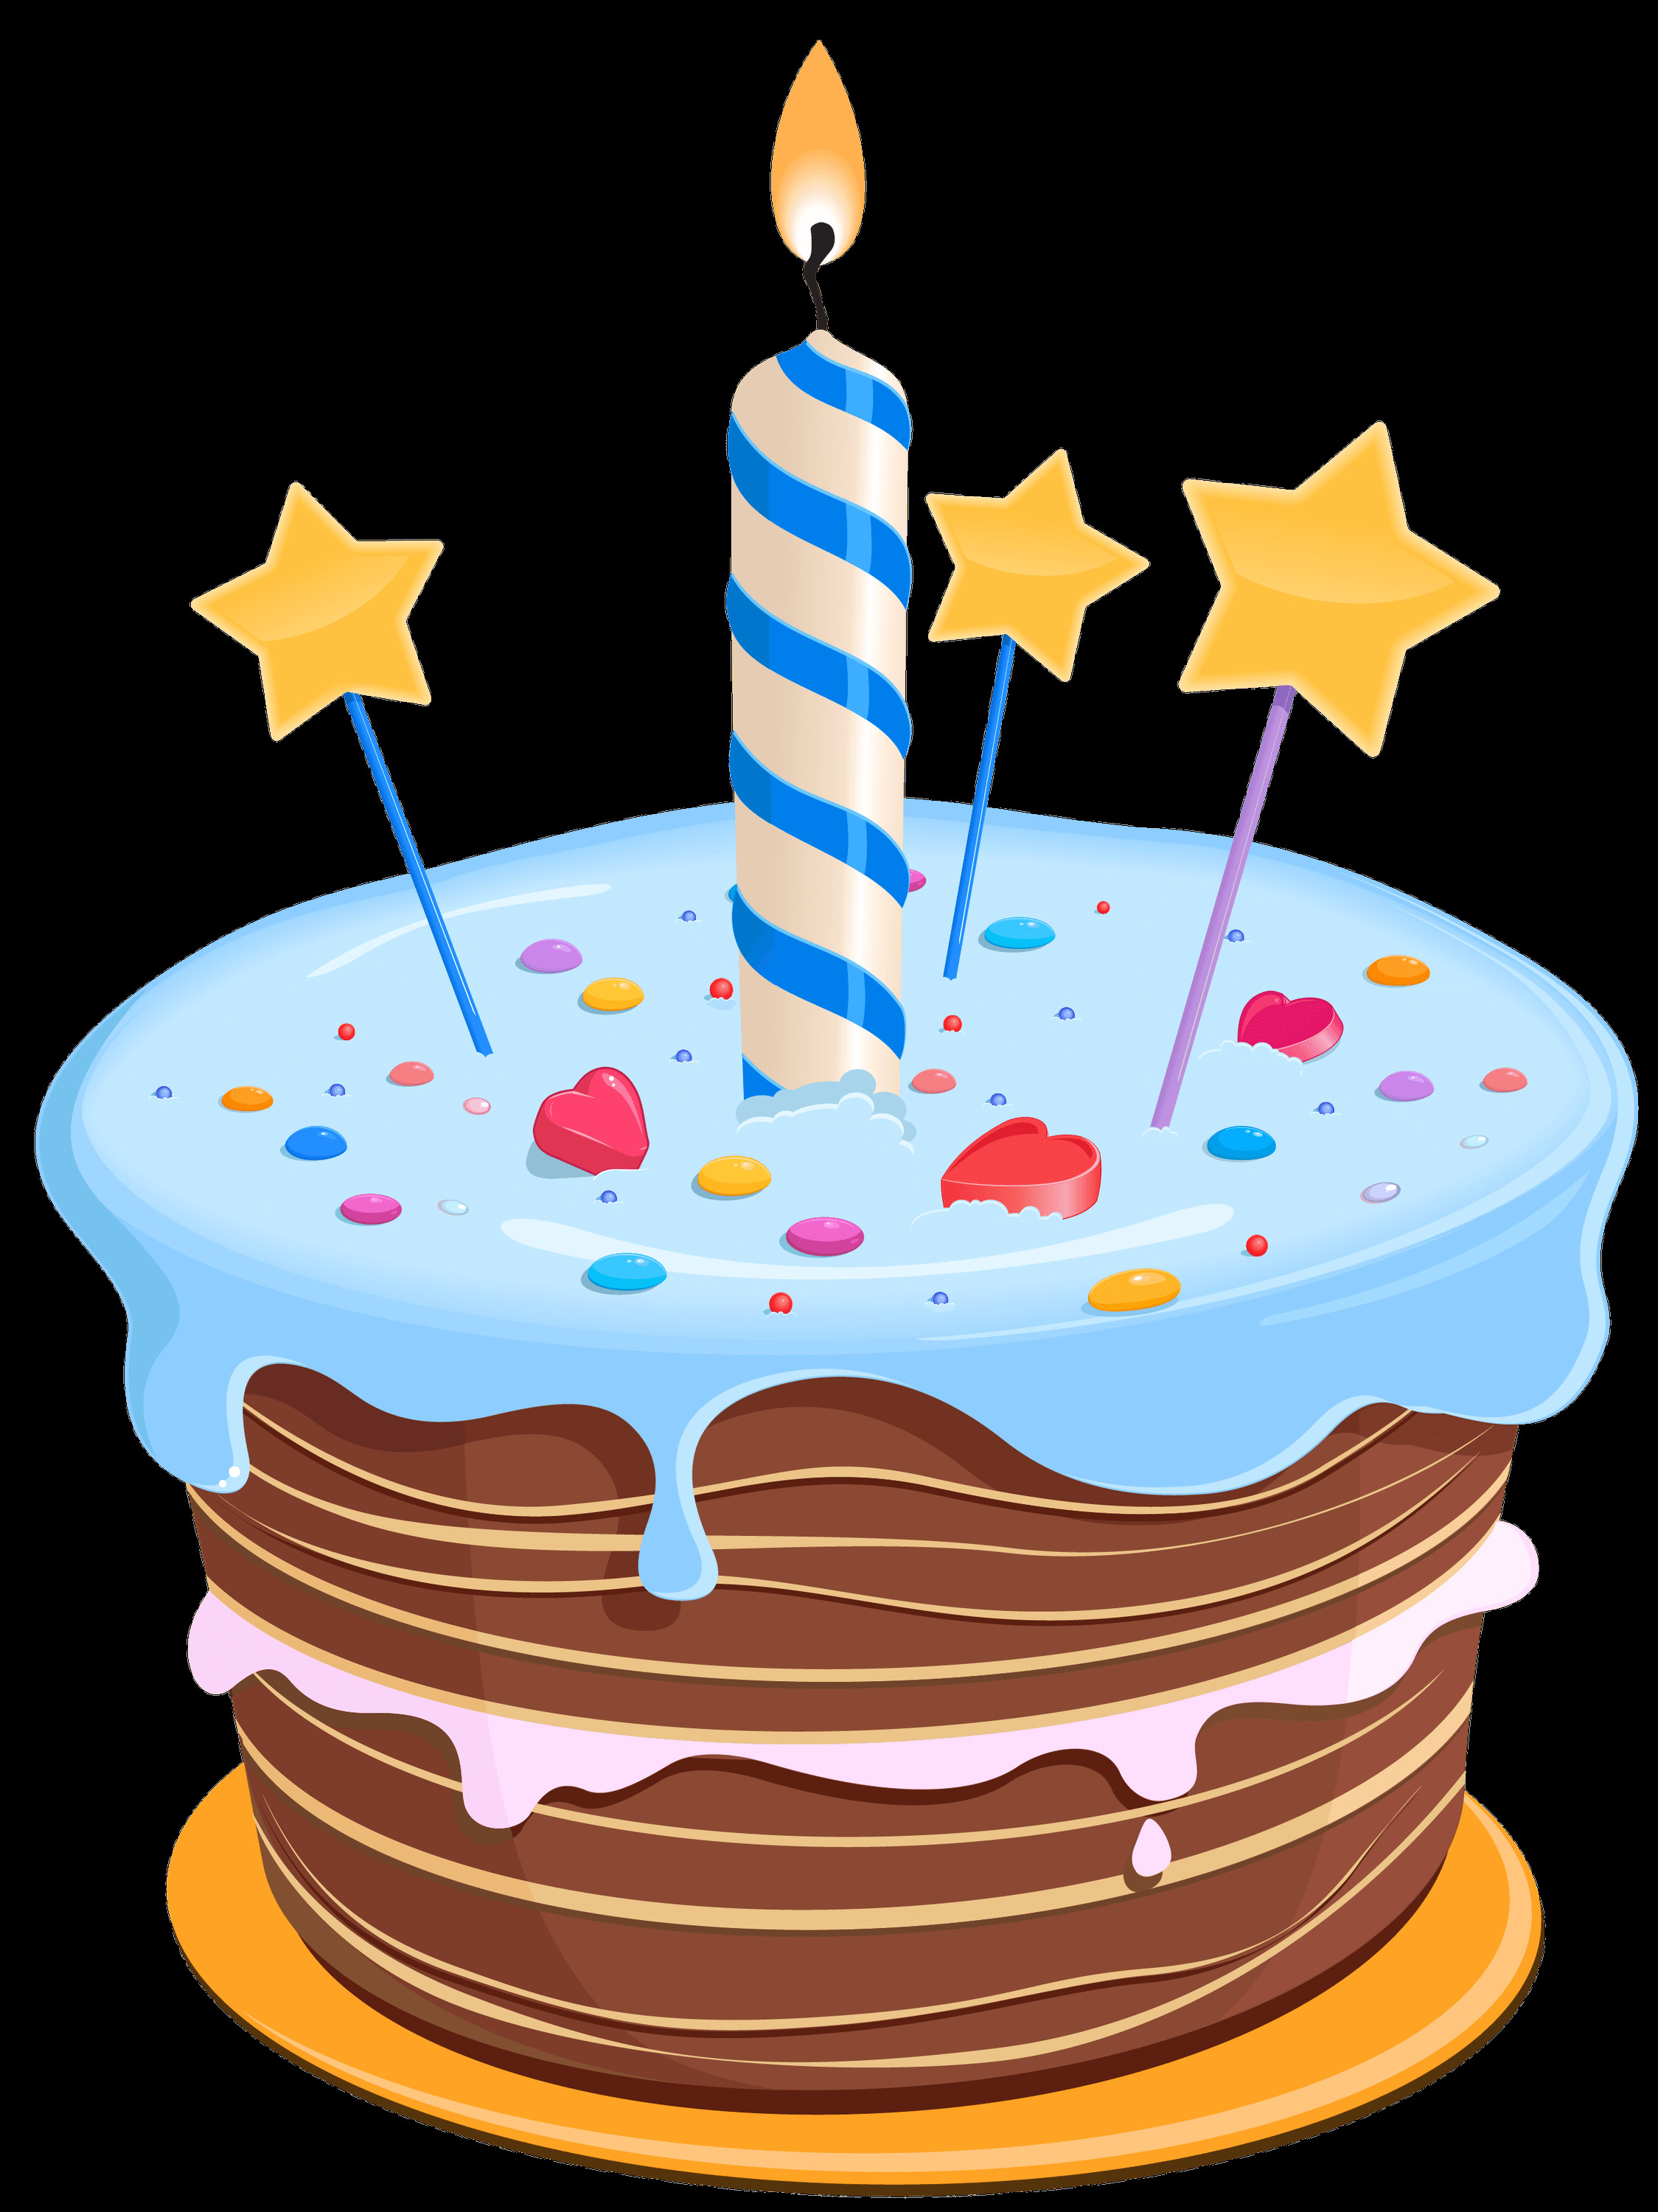 Best ideas about Birthday Cake Transparent . Save or Pin Birthday Cake Drawing Blue transparent PNG StickPNG Now.